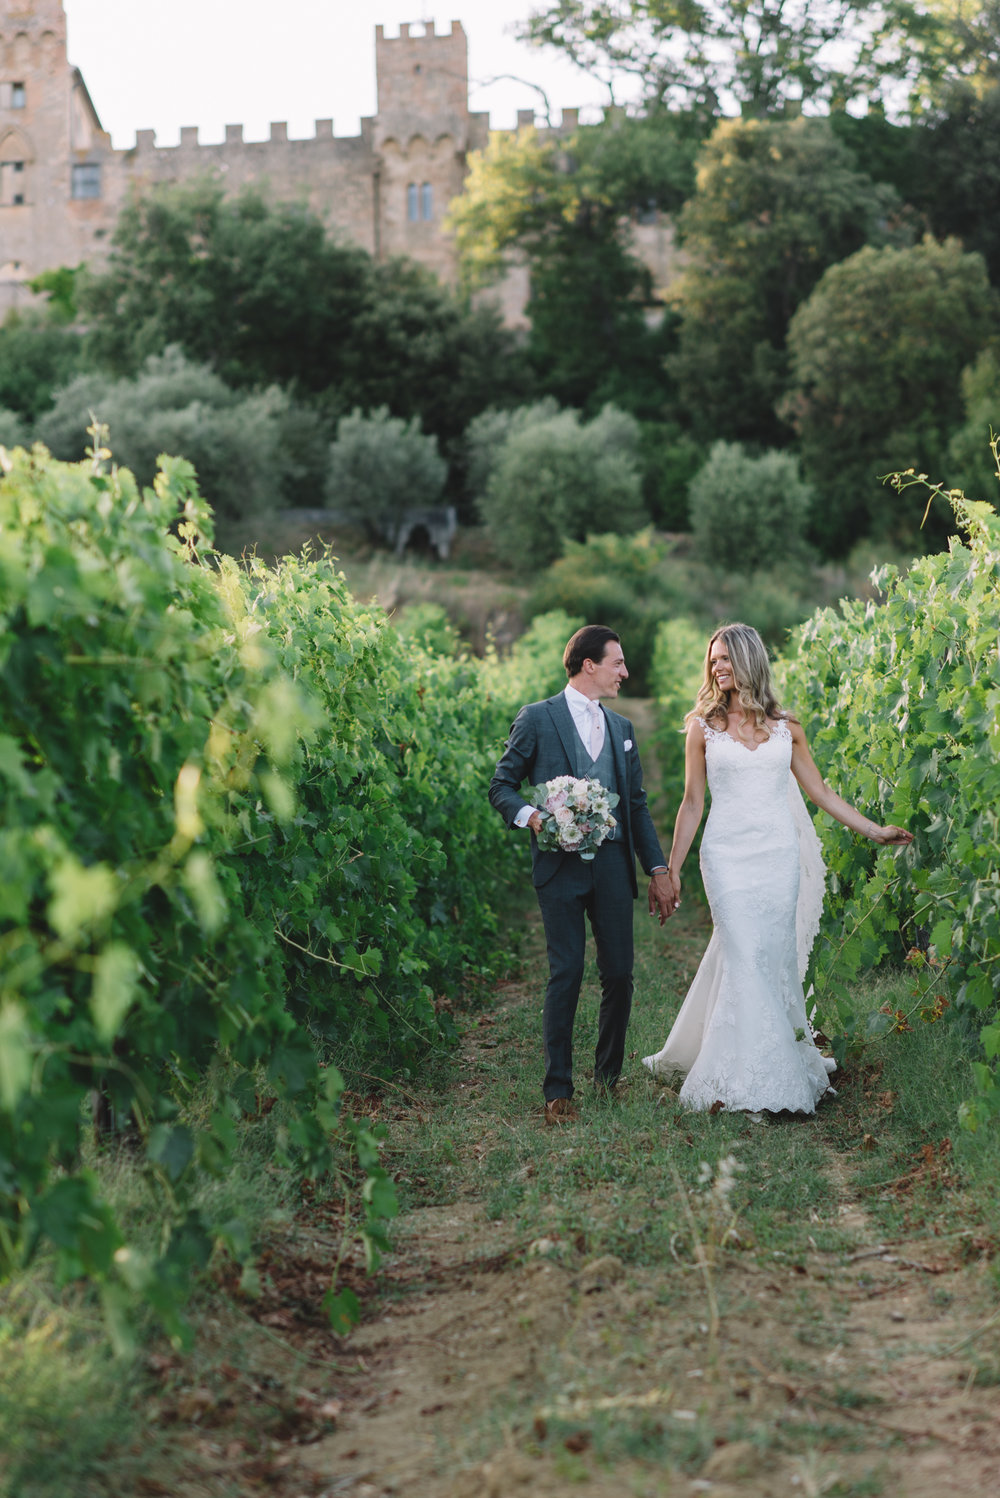 Wedding_Photographer_in_Tuscany_Italy-028.jpg